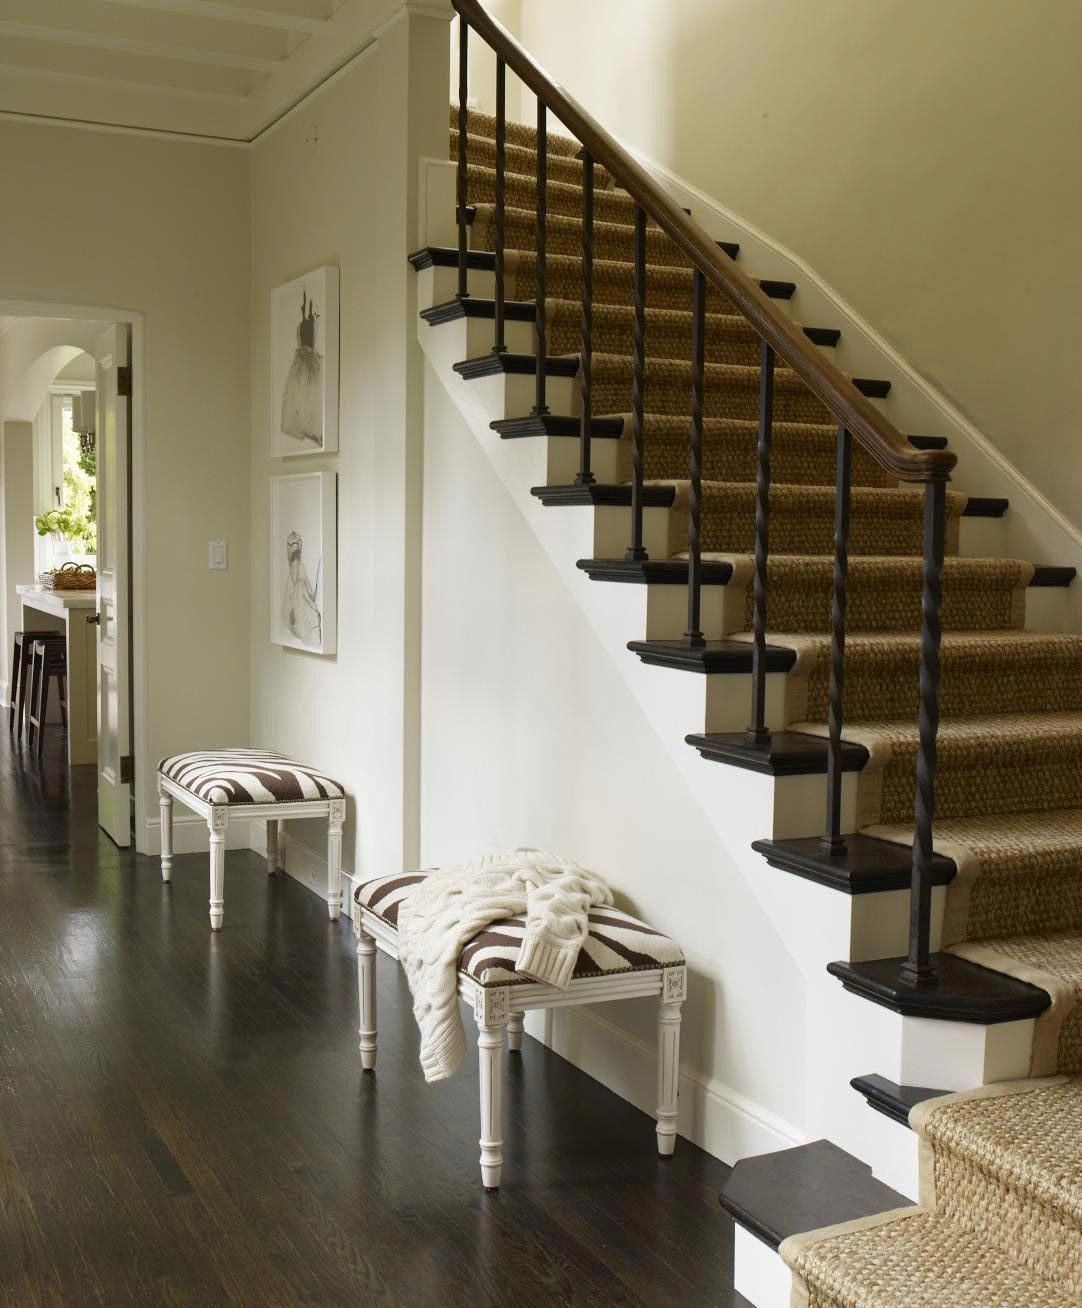 Best Carpet Runners For Stairs Lowes Carpetrunnersukfacebook 400 x 300